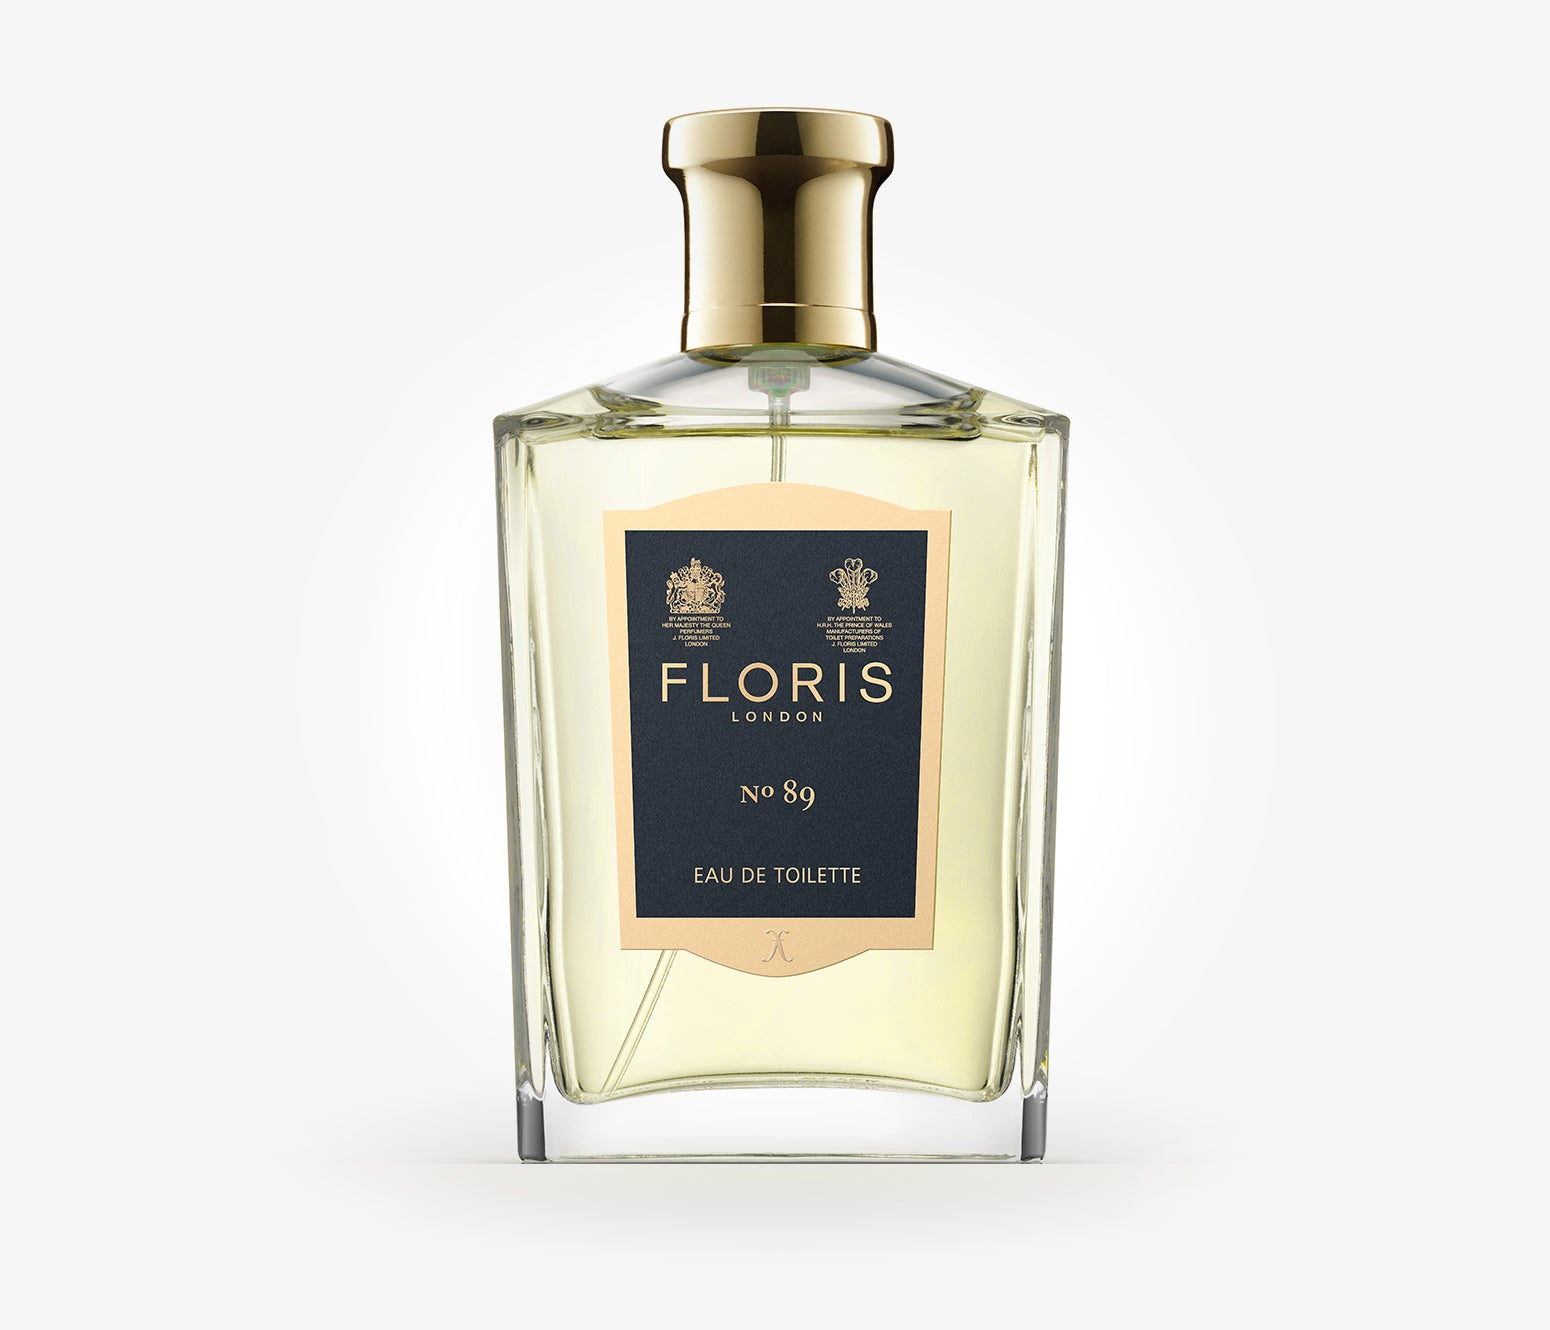 Floris - No.89 - 100ml - ESU001 - product image - Fragrance - Les Senteurs